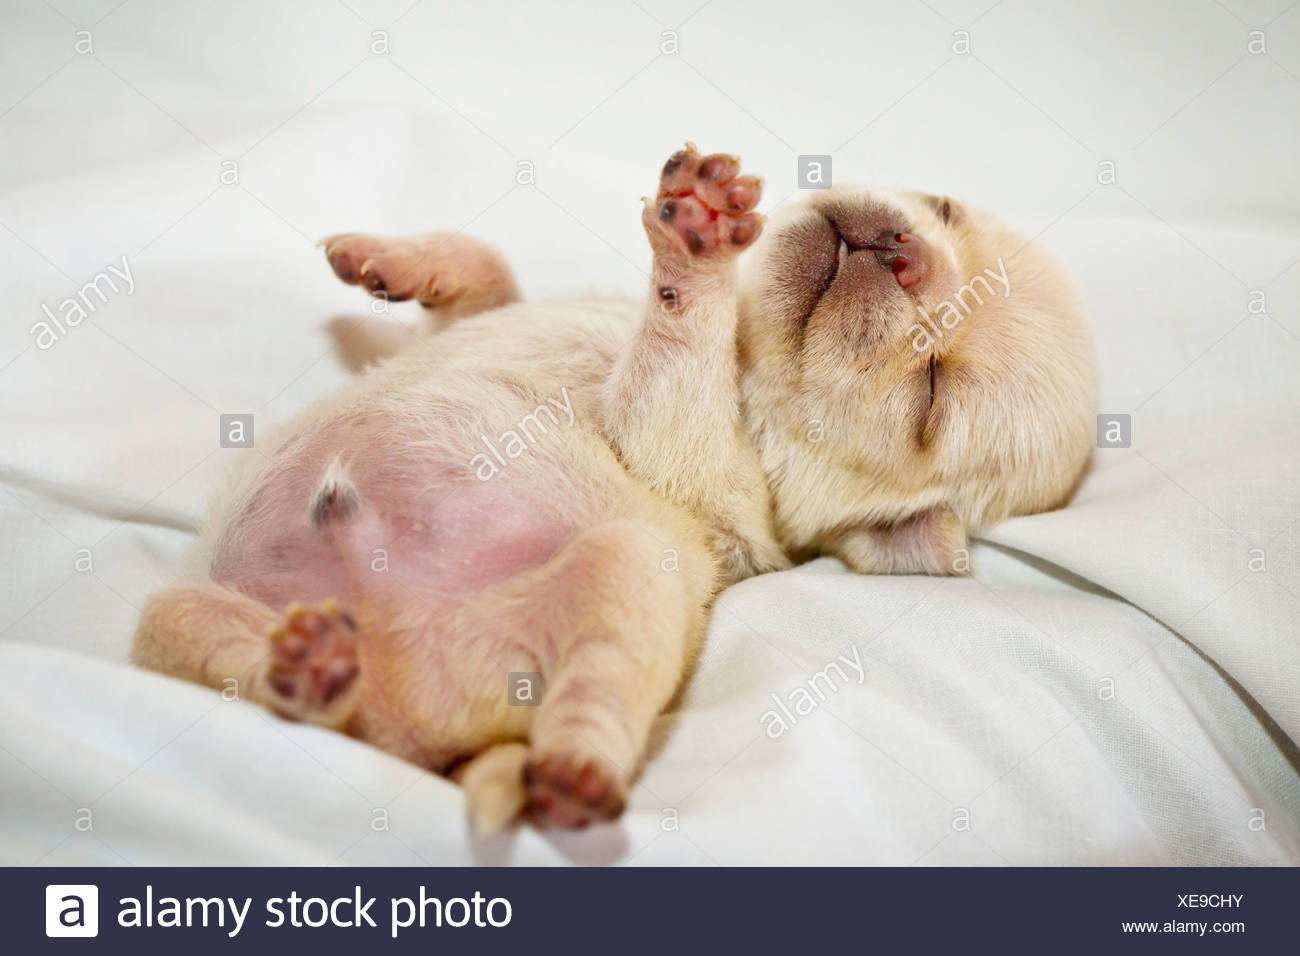 Cream-colored pug puppy lying on sheet - Stock Image